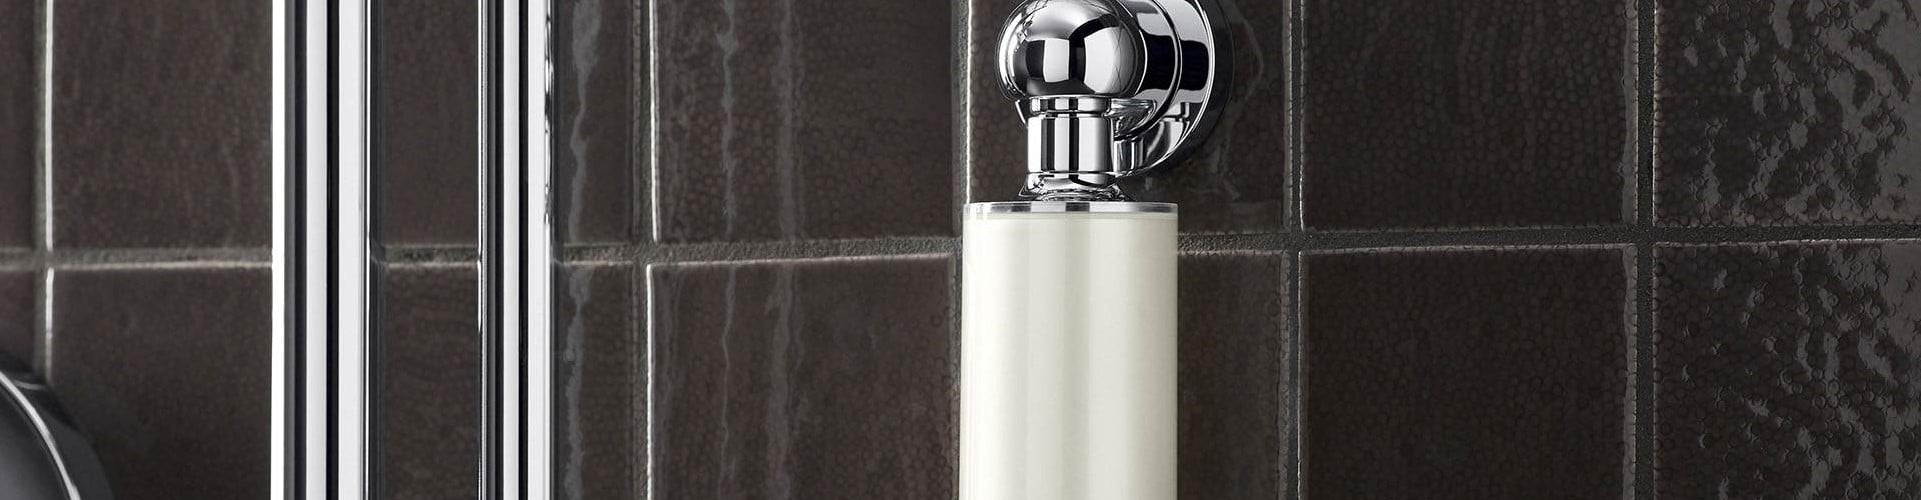 Best Shower Filters for Hard Water